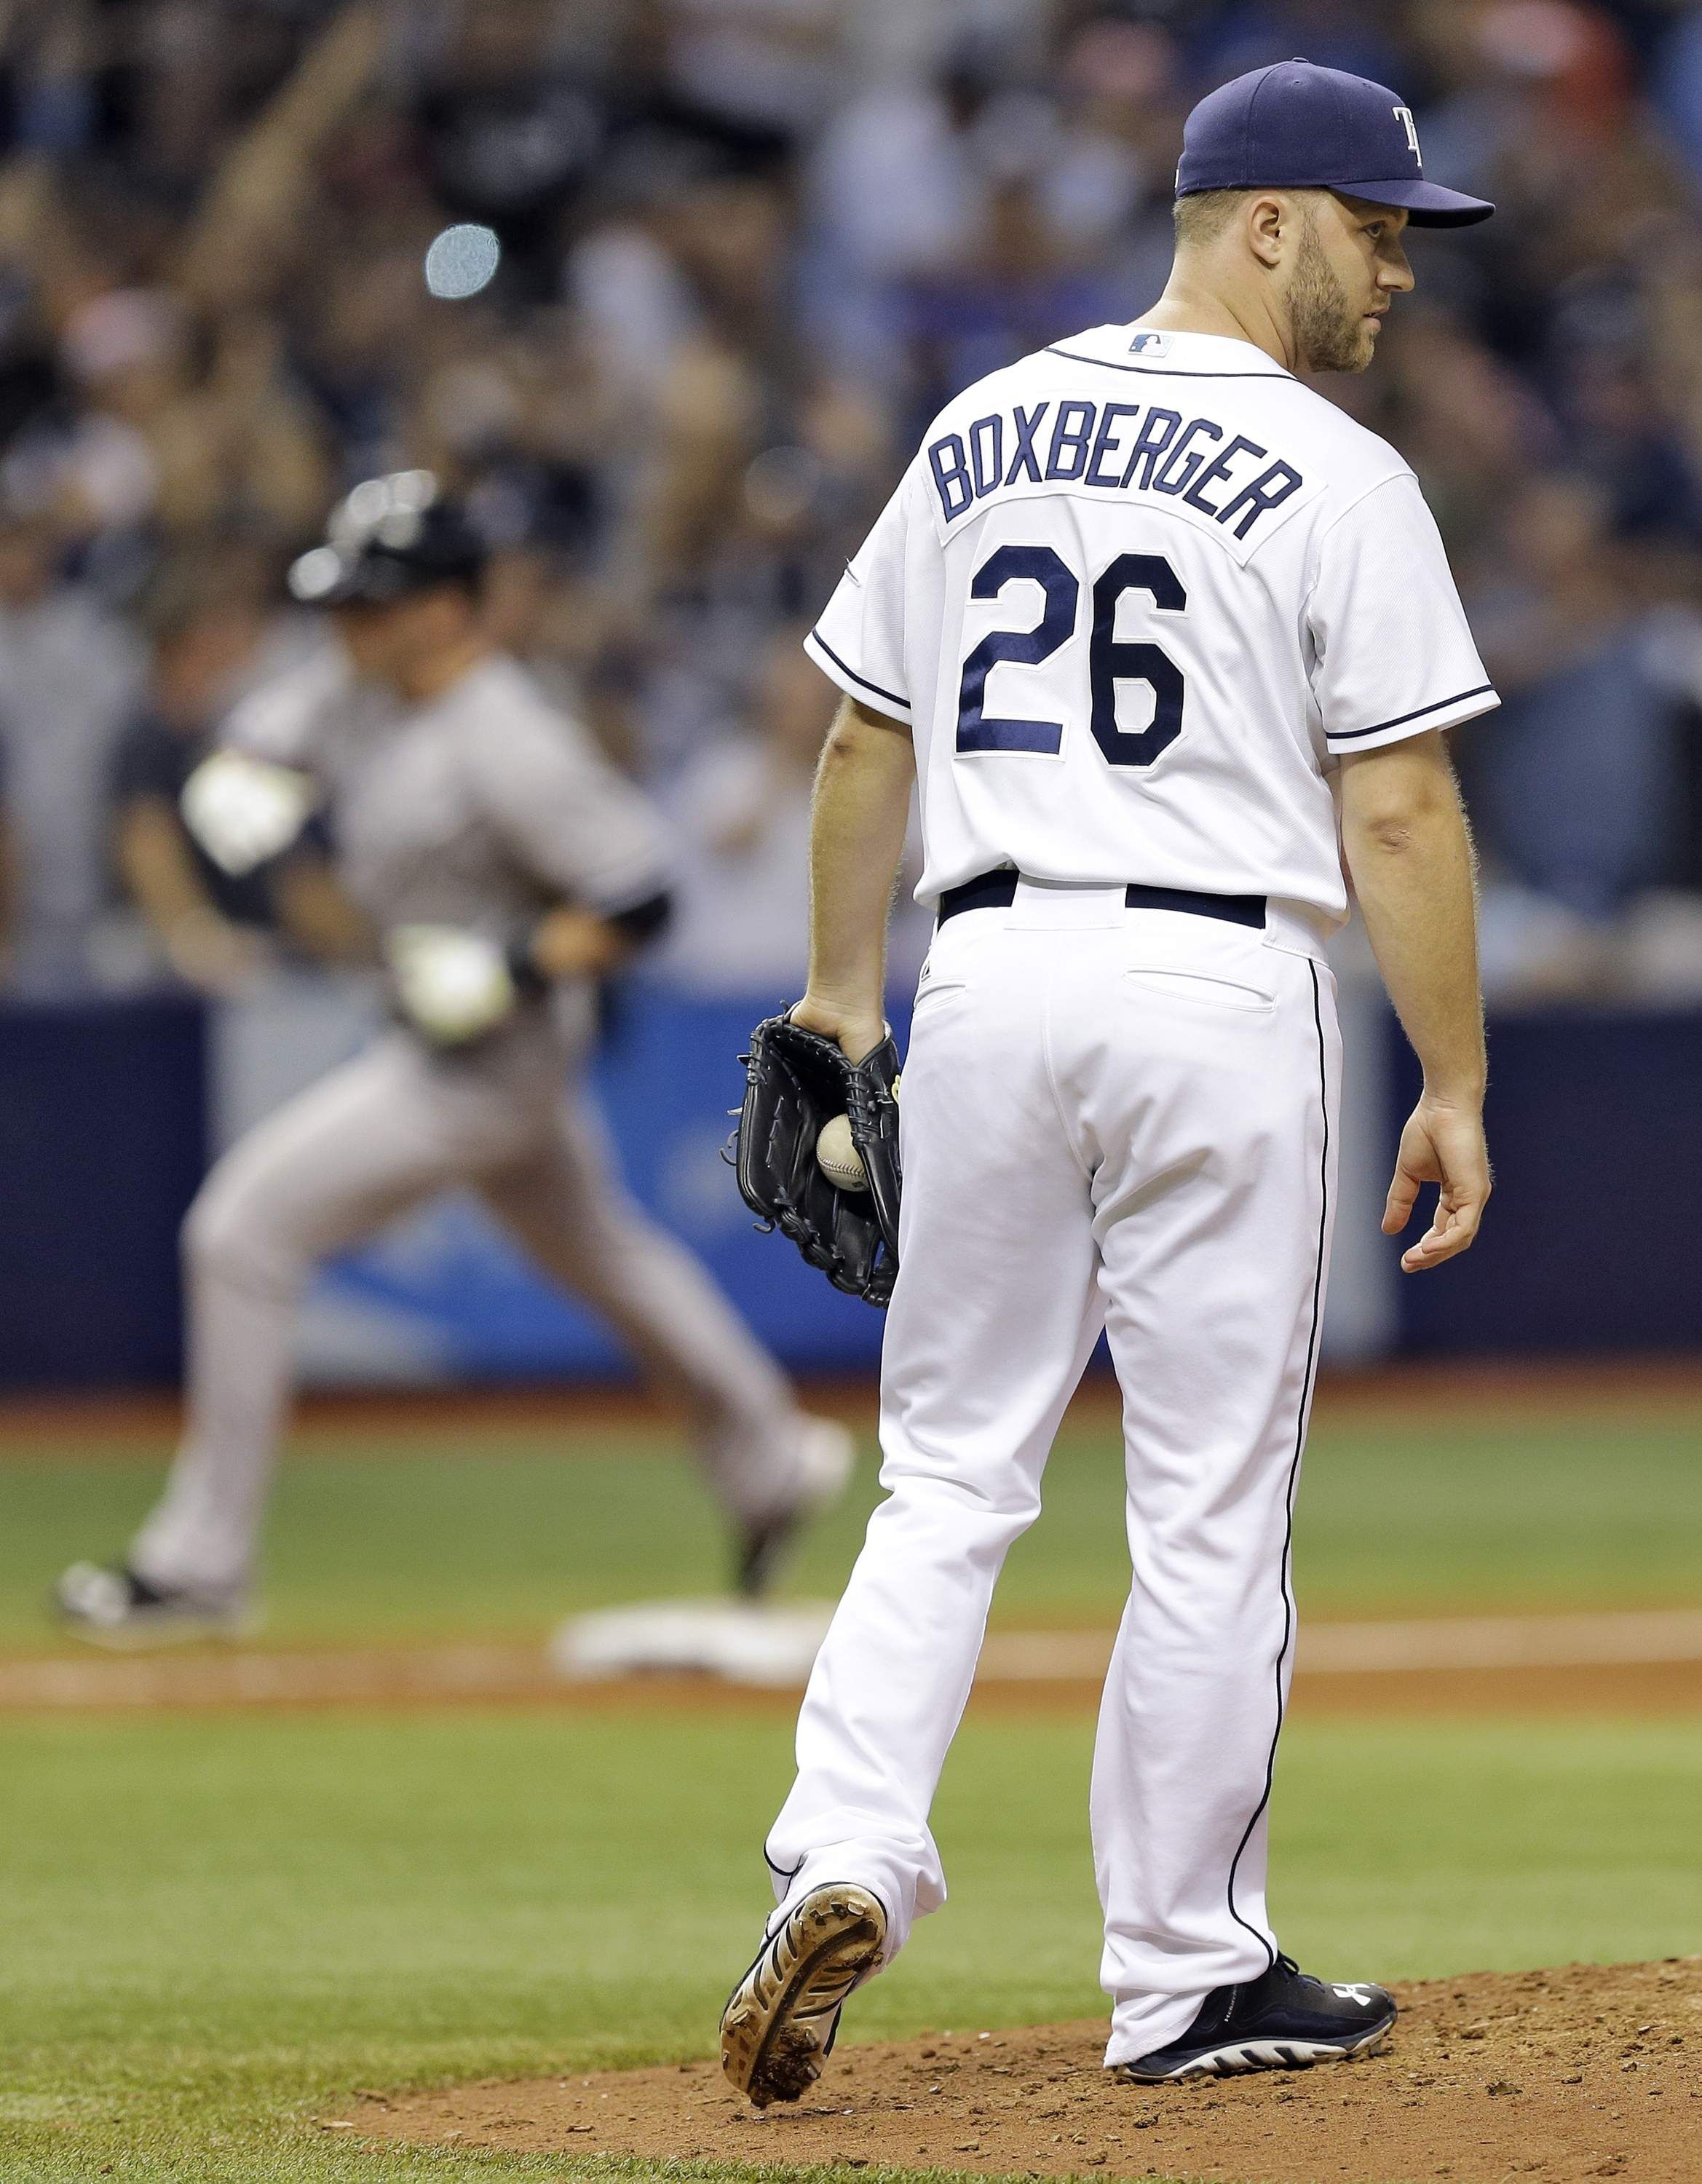 No Hitter By Ramirez Spoiled As Rays Lose 4 1 To Yankees Yankees Team New York Yankees Tampa Bay